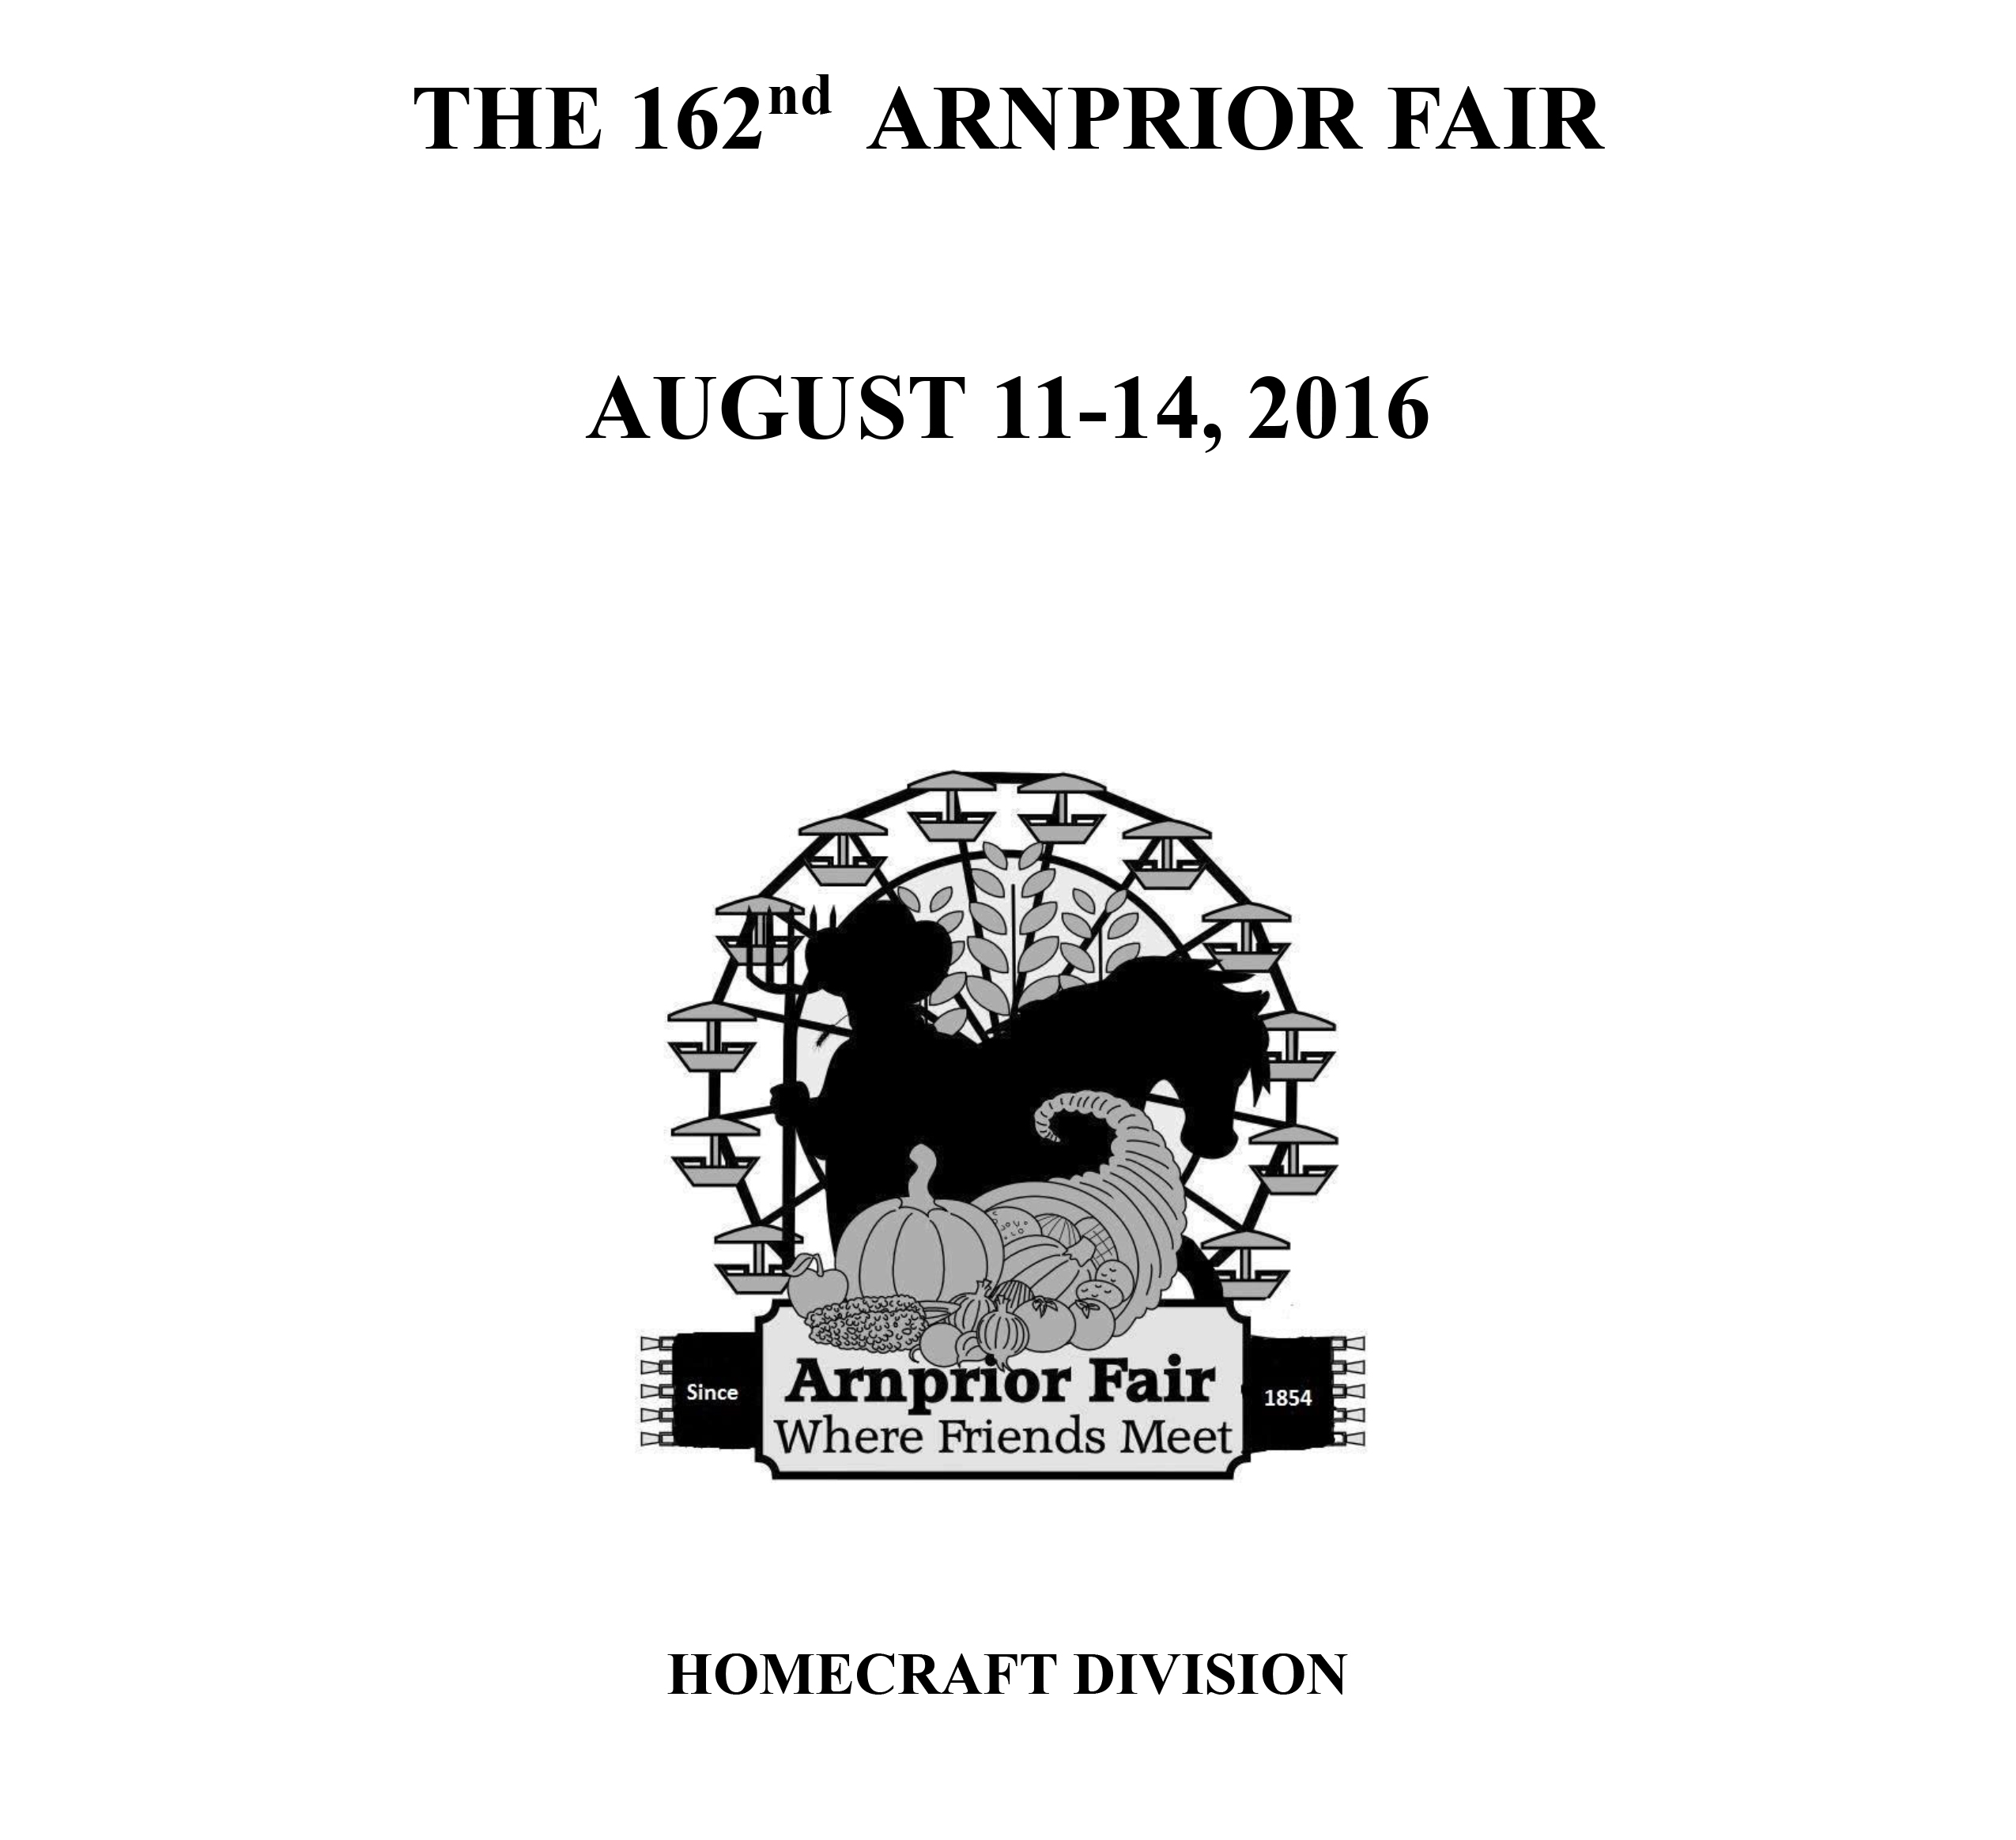 THE 161ST ARNPRIOR FAIR